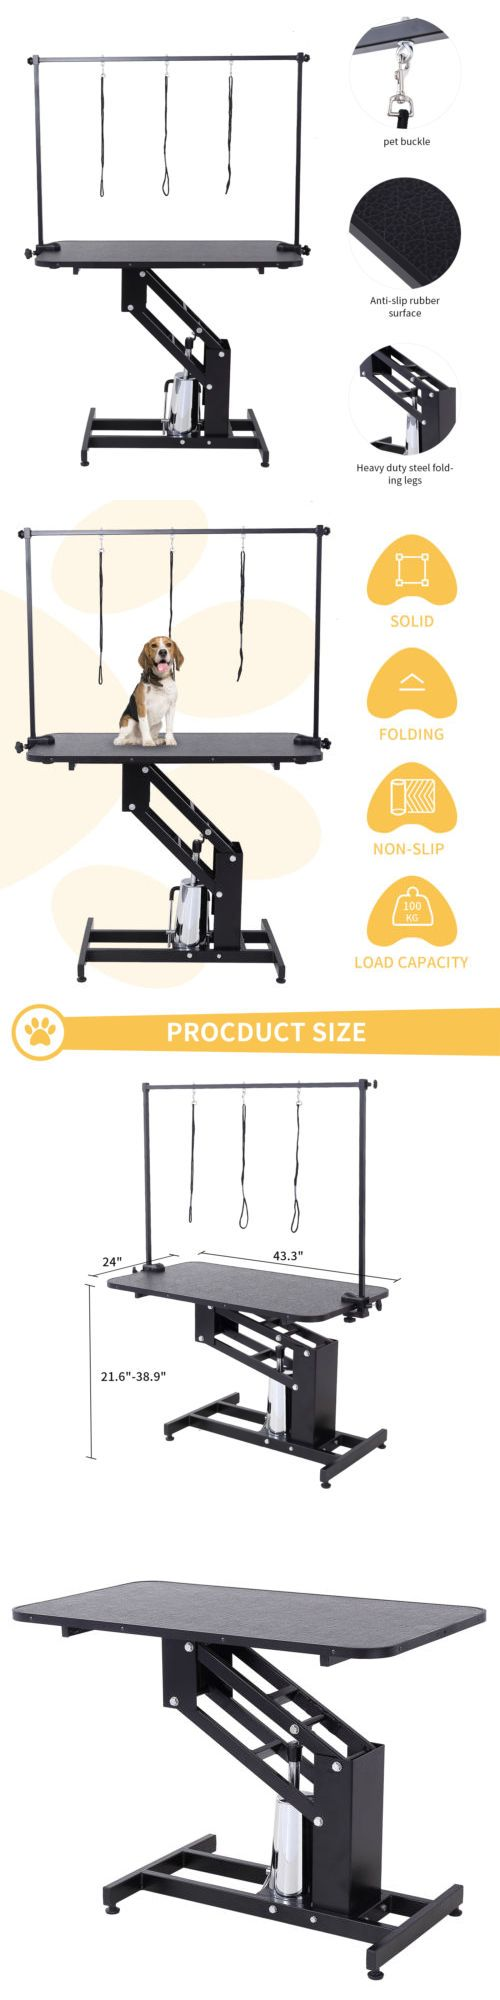 Grooming 177792: Adjustable Z-Lift Hydraulic Dog Pet Grooming Table Powder Coating Arm And Noose -> BUY IT NOW ONLY: $249.9 on eBay!